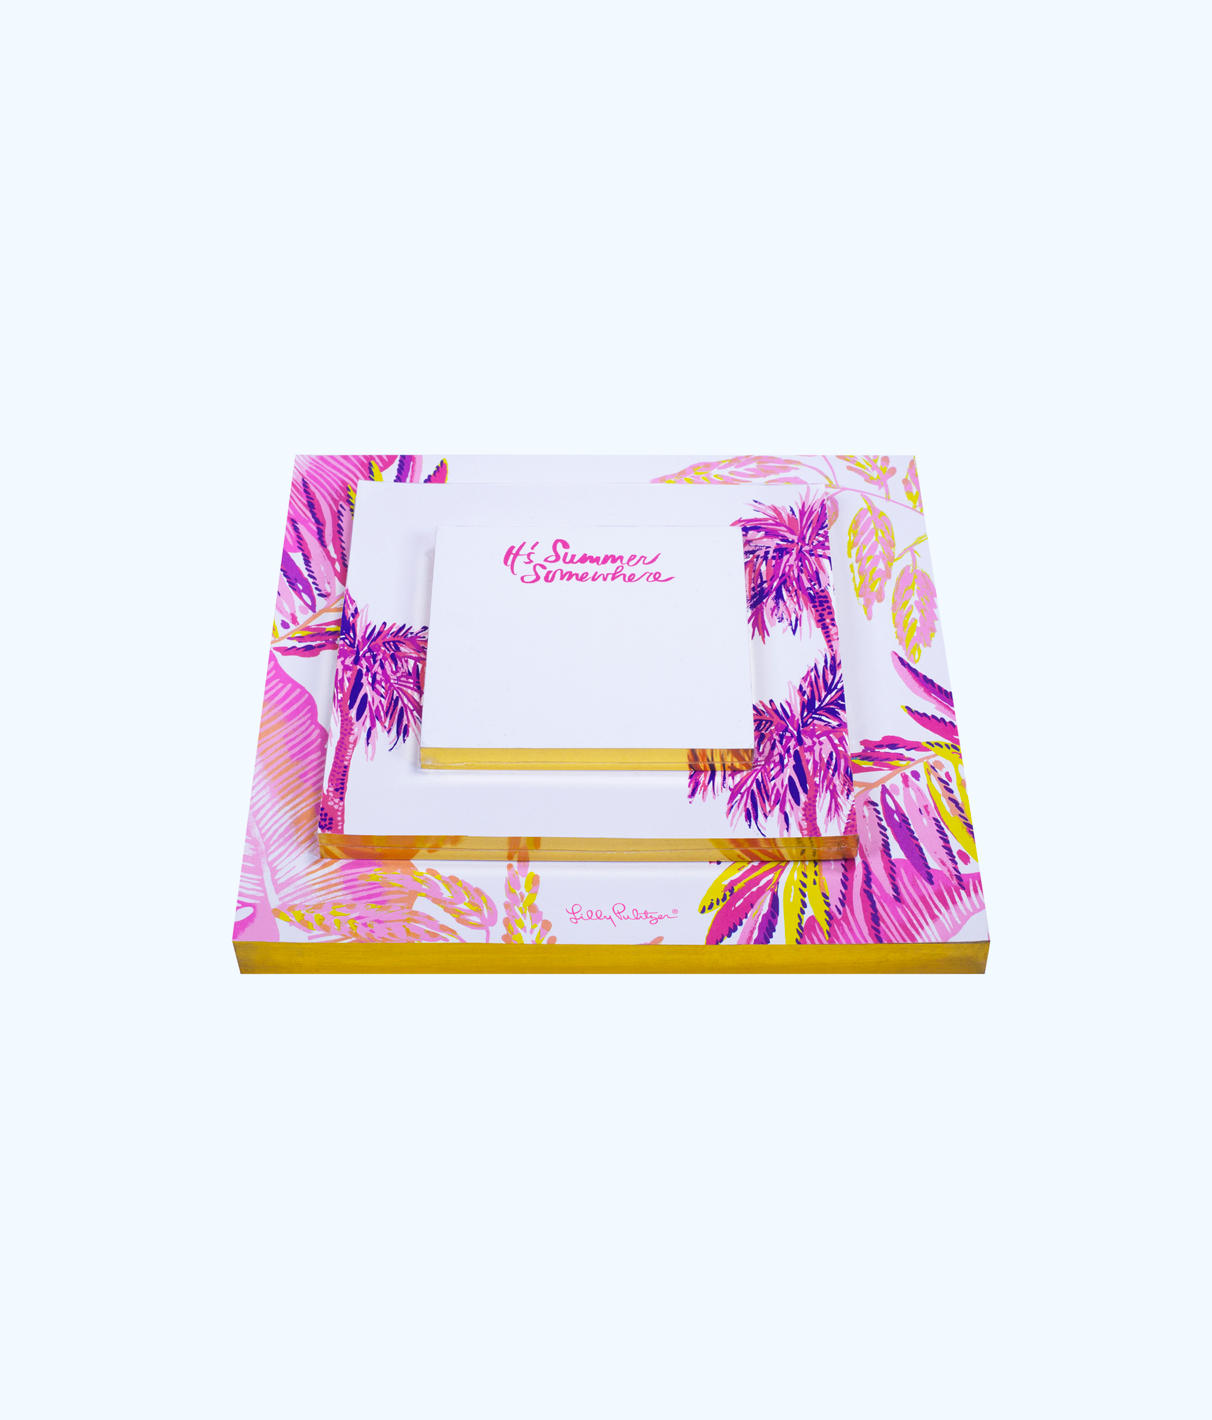 Lilly Pulitzer Lilly Pulitzer Notepad Set